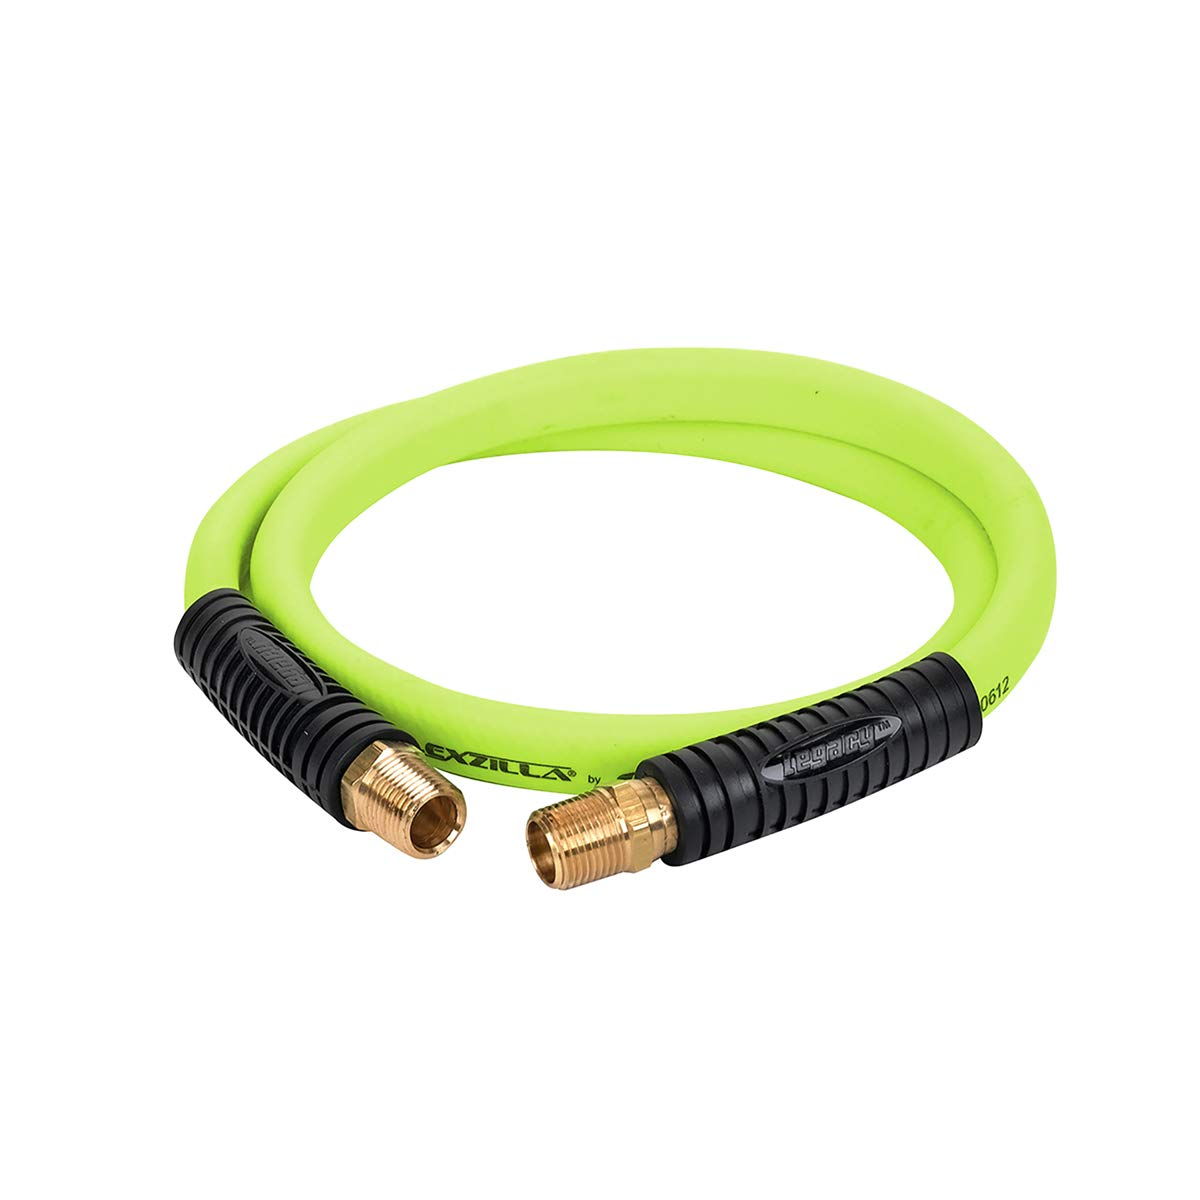 Manguera neumatica : Flexzilla Swivel Whip Air Hose 1/2 x 1m